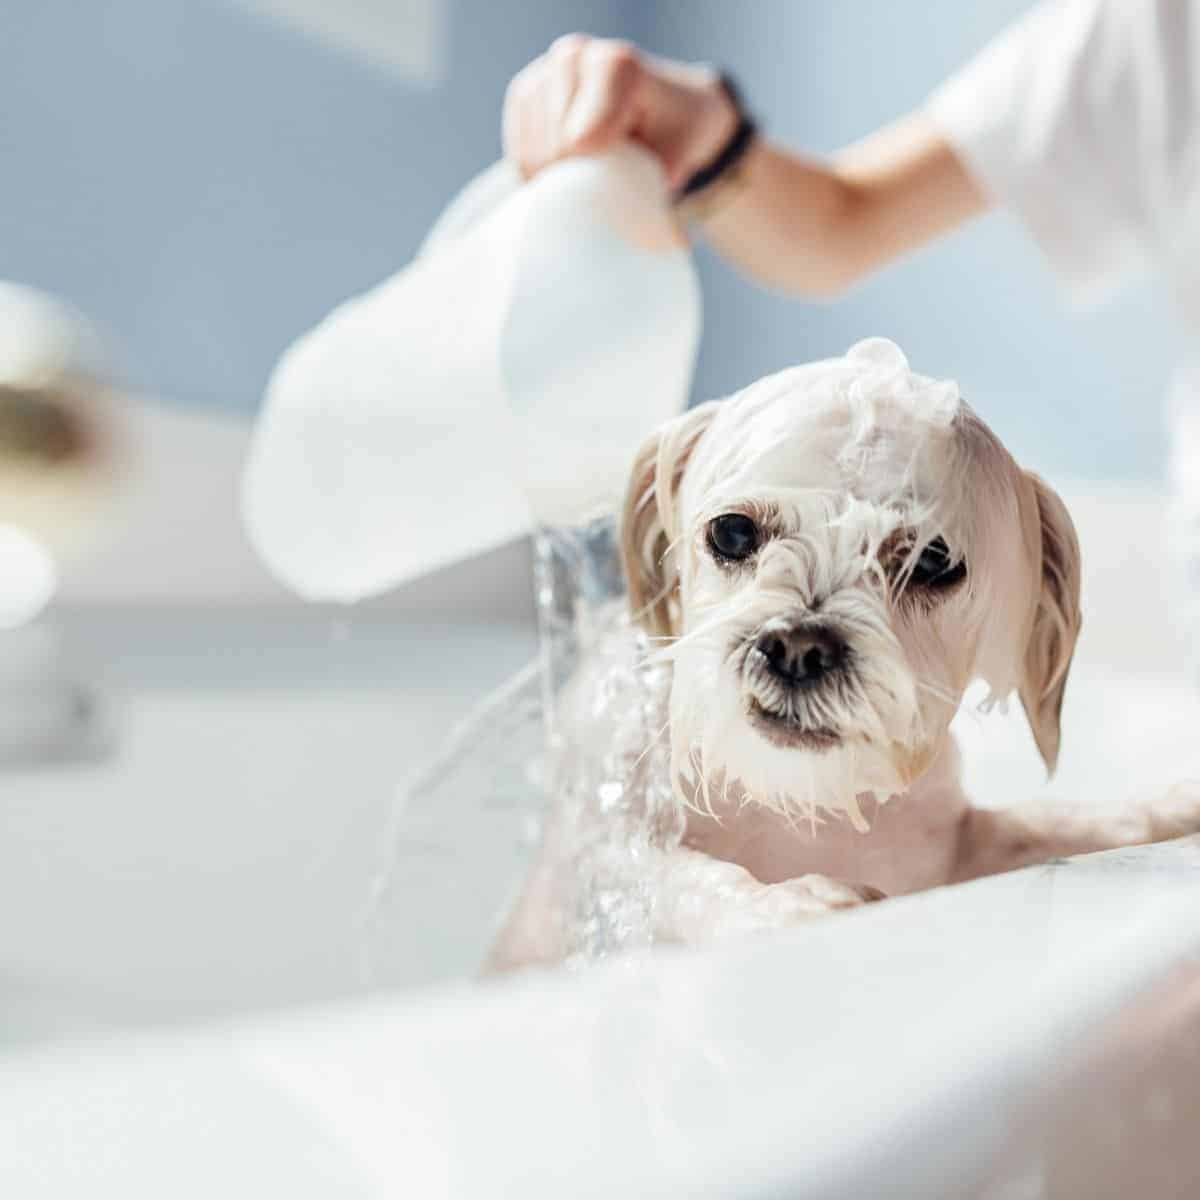 giving a dog a bath